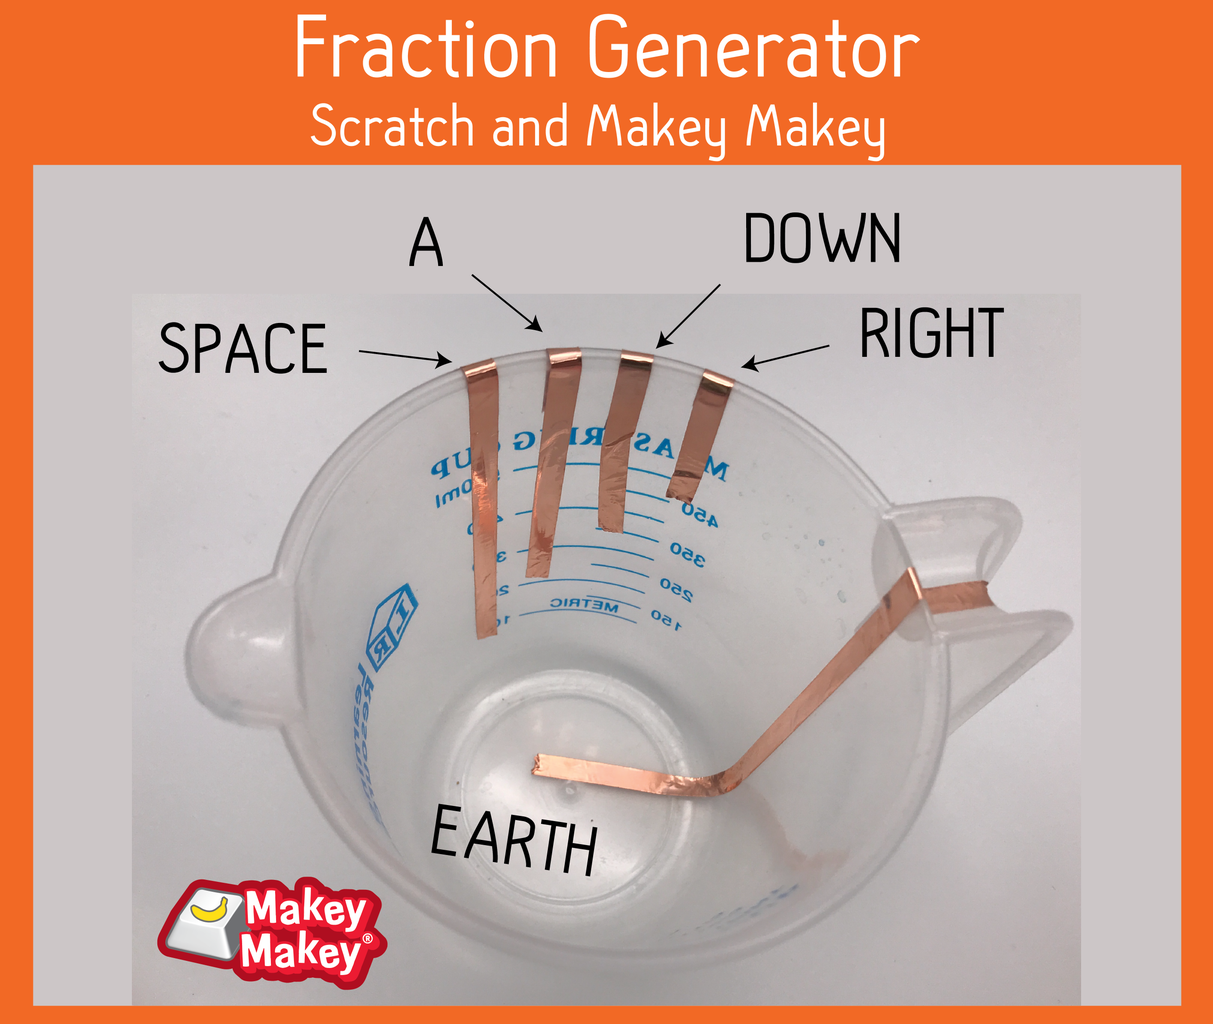 Makey Makey and Scratch Fraction Generator